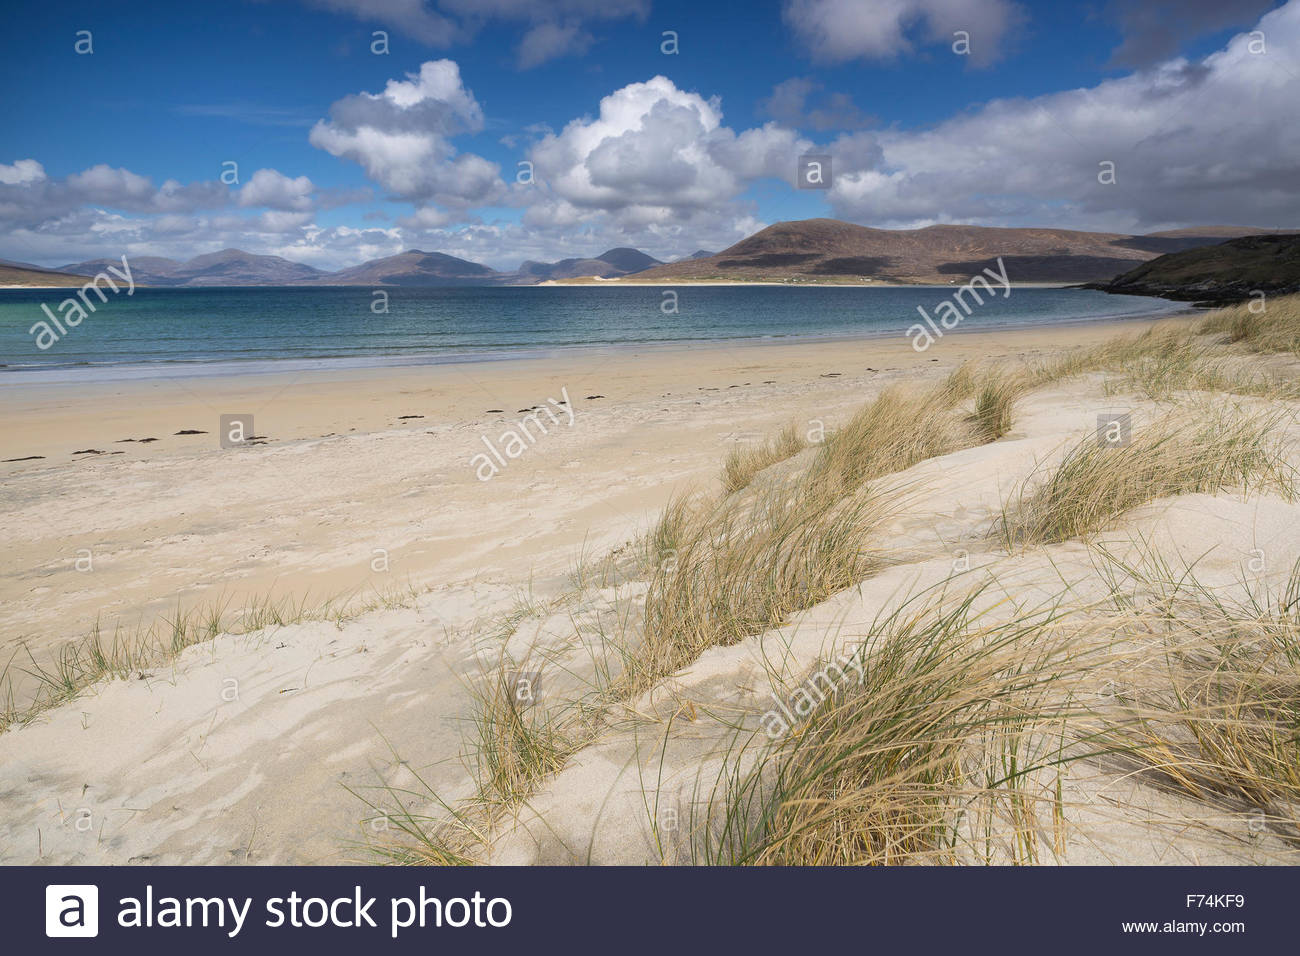 A view from the dunes at Horgabost beach across the sound of Taransay to the hills beyond, Isle of Harris, Outer - Stock Image